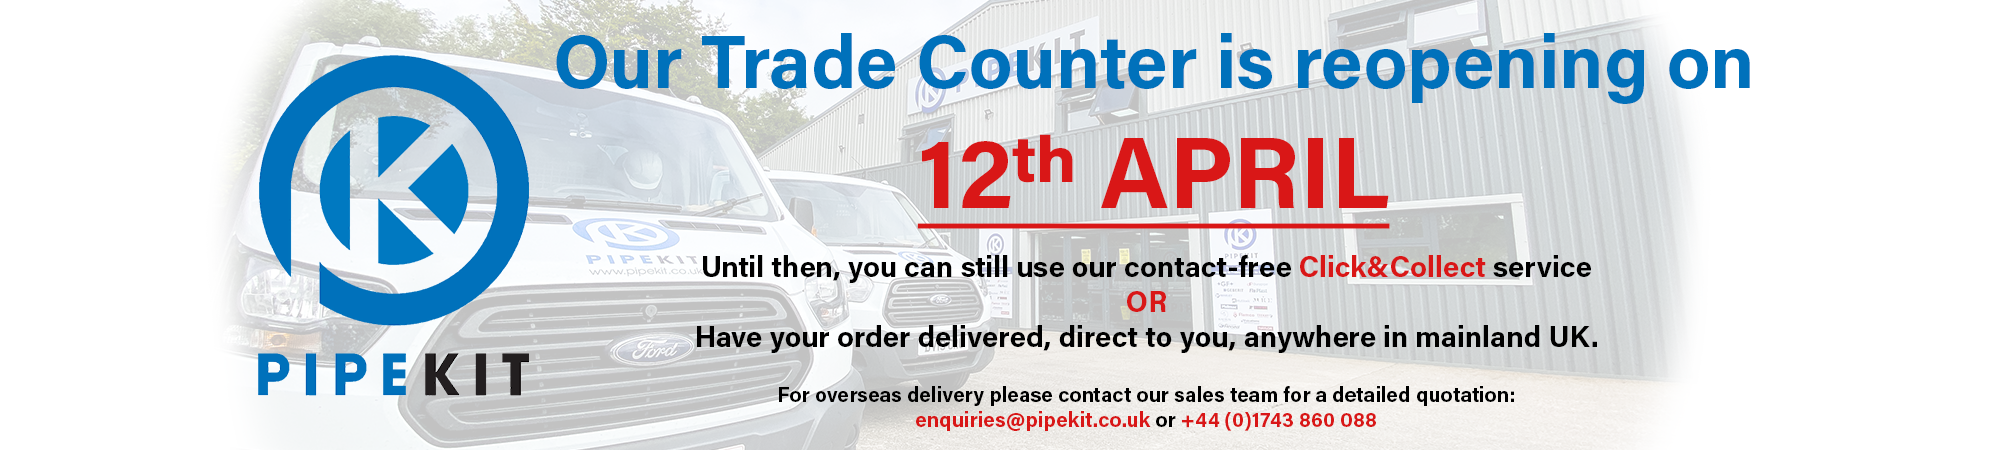 Trade Counter Reopening 12th April